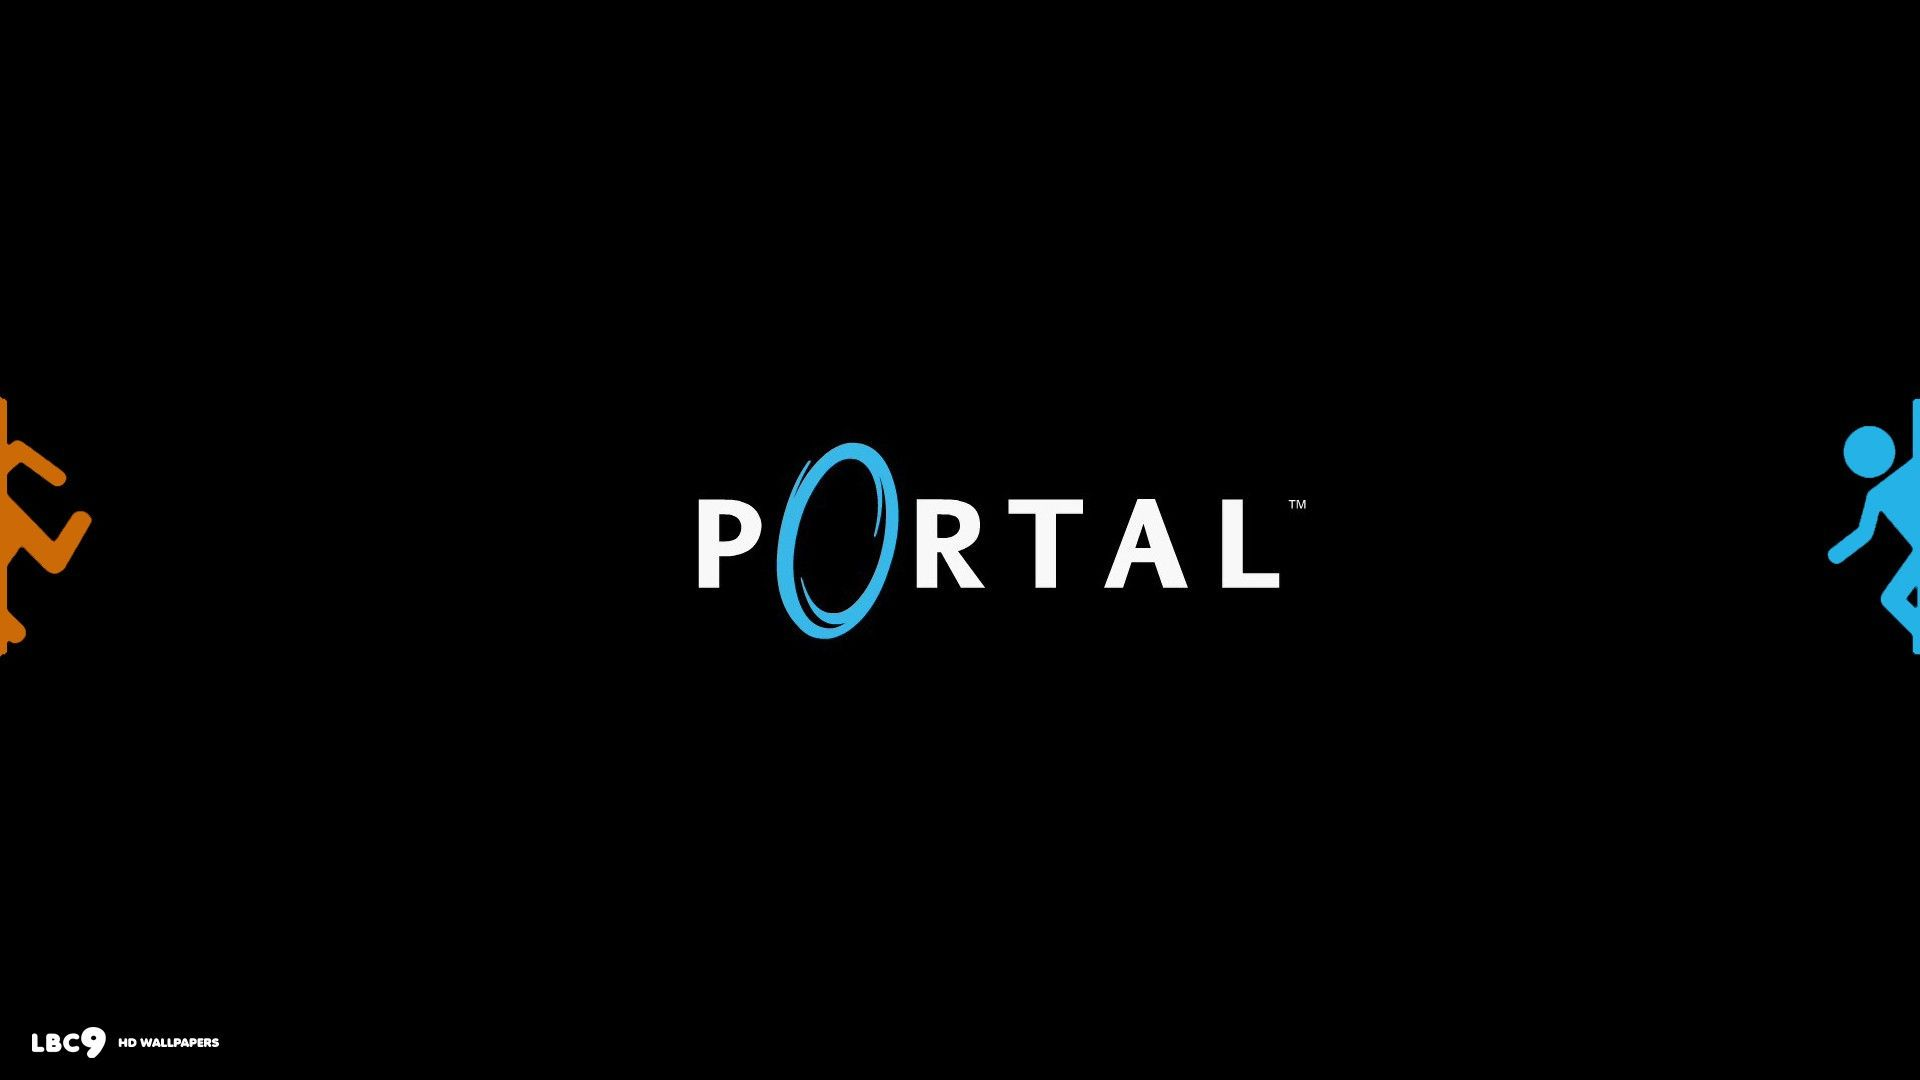 portal background